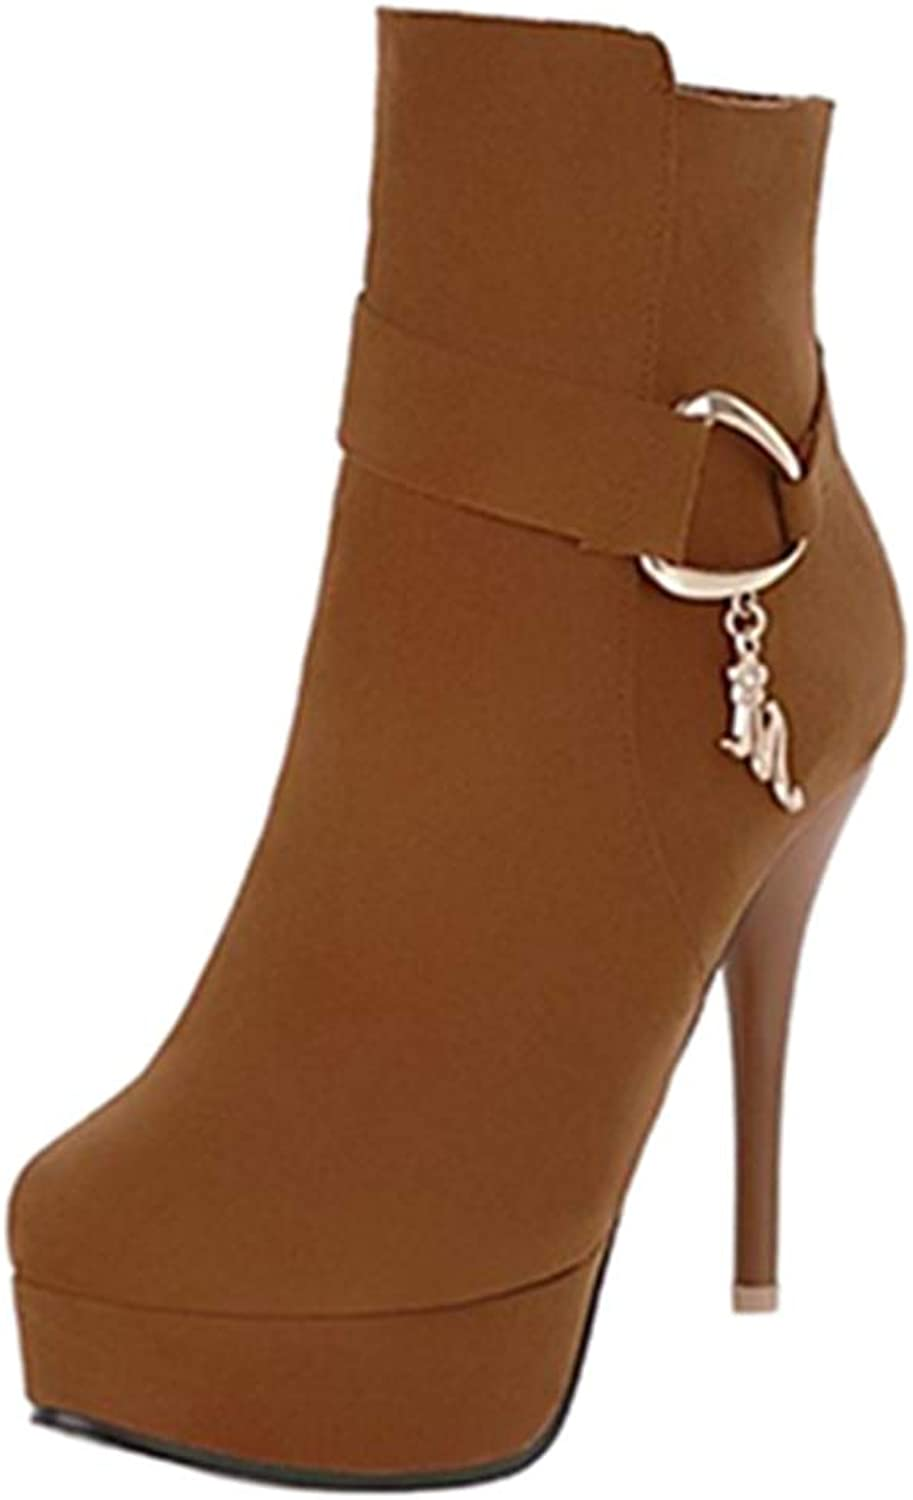 Smilice Women High Stiletto Ankle Boots